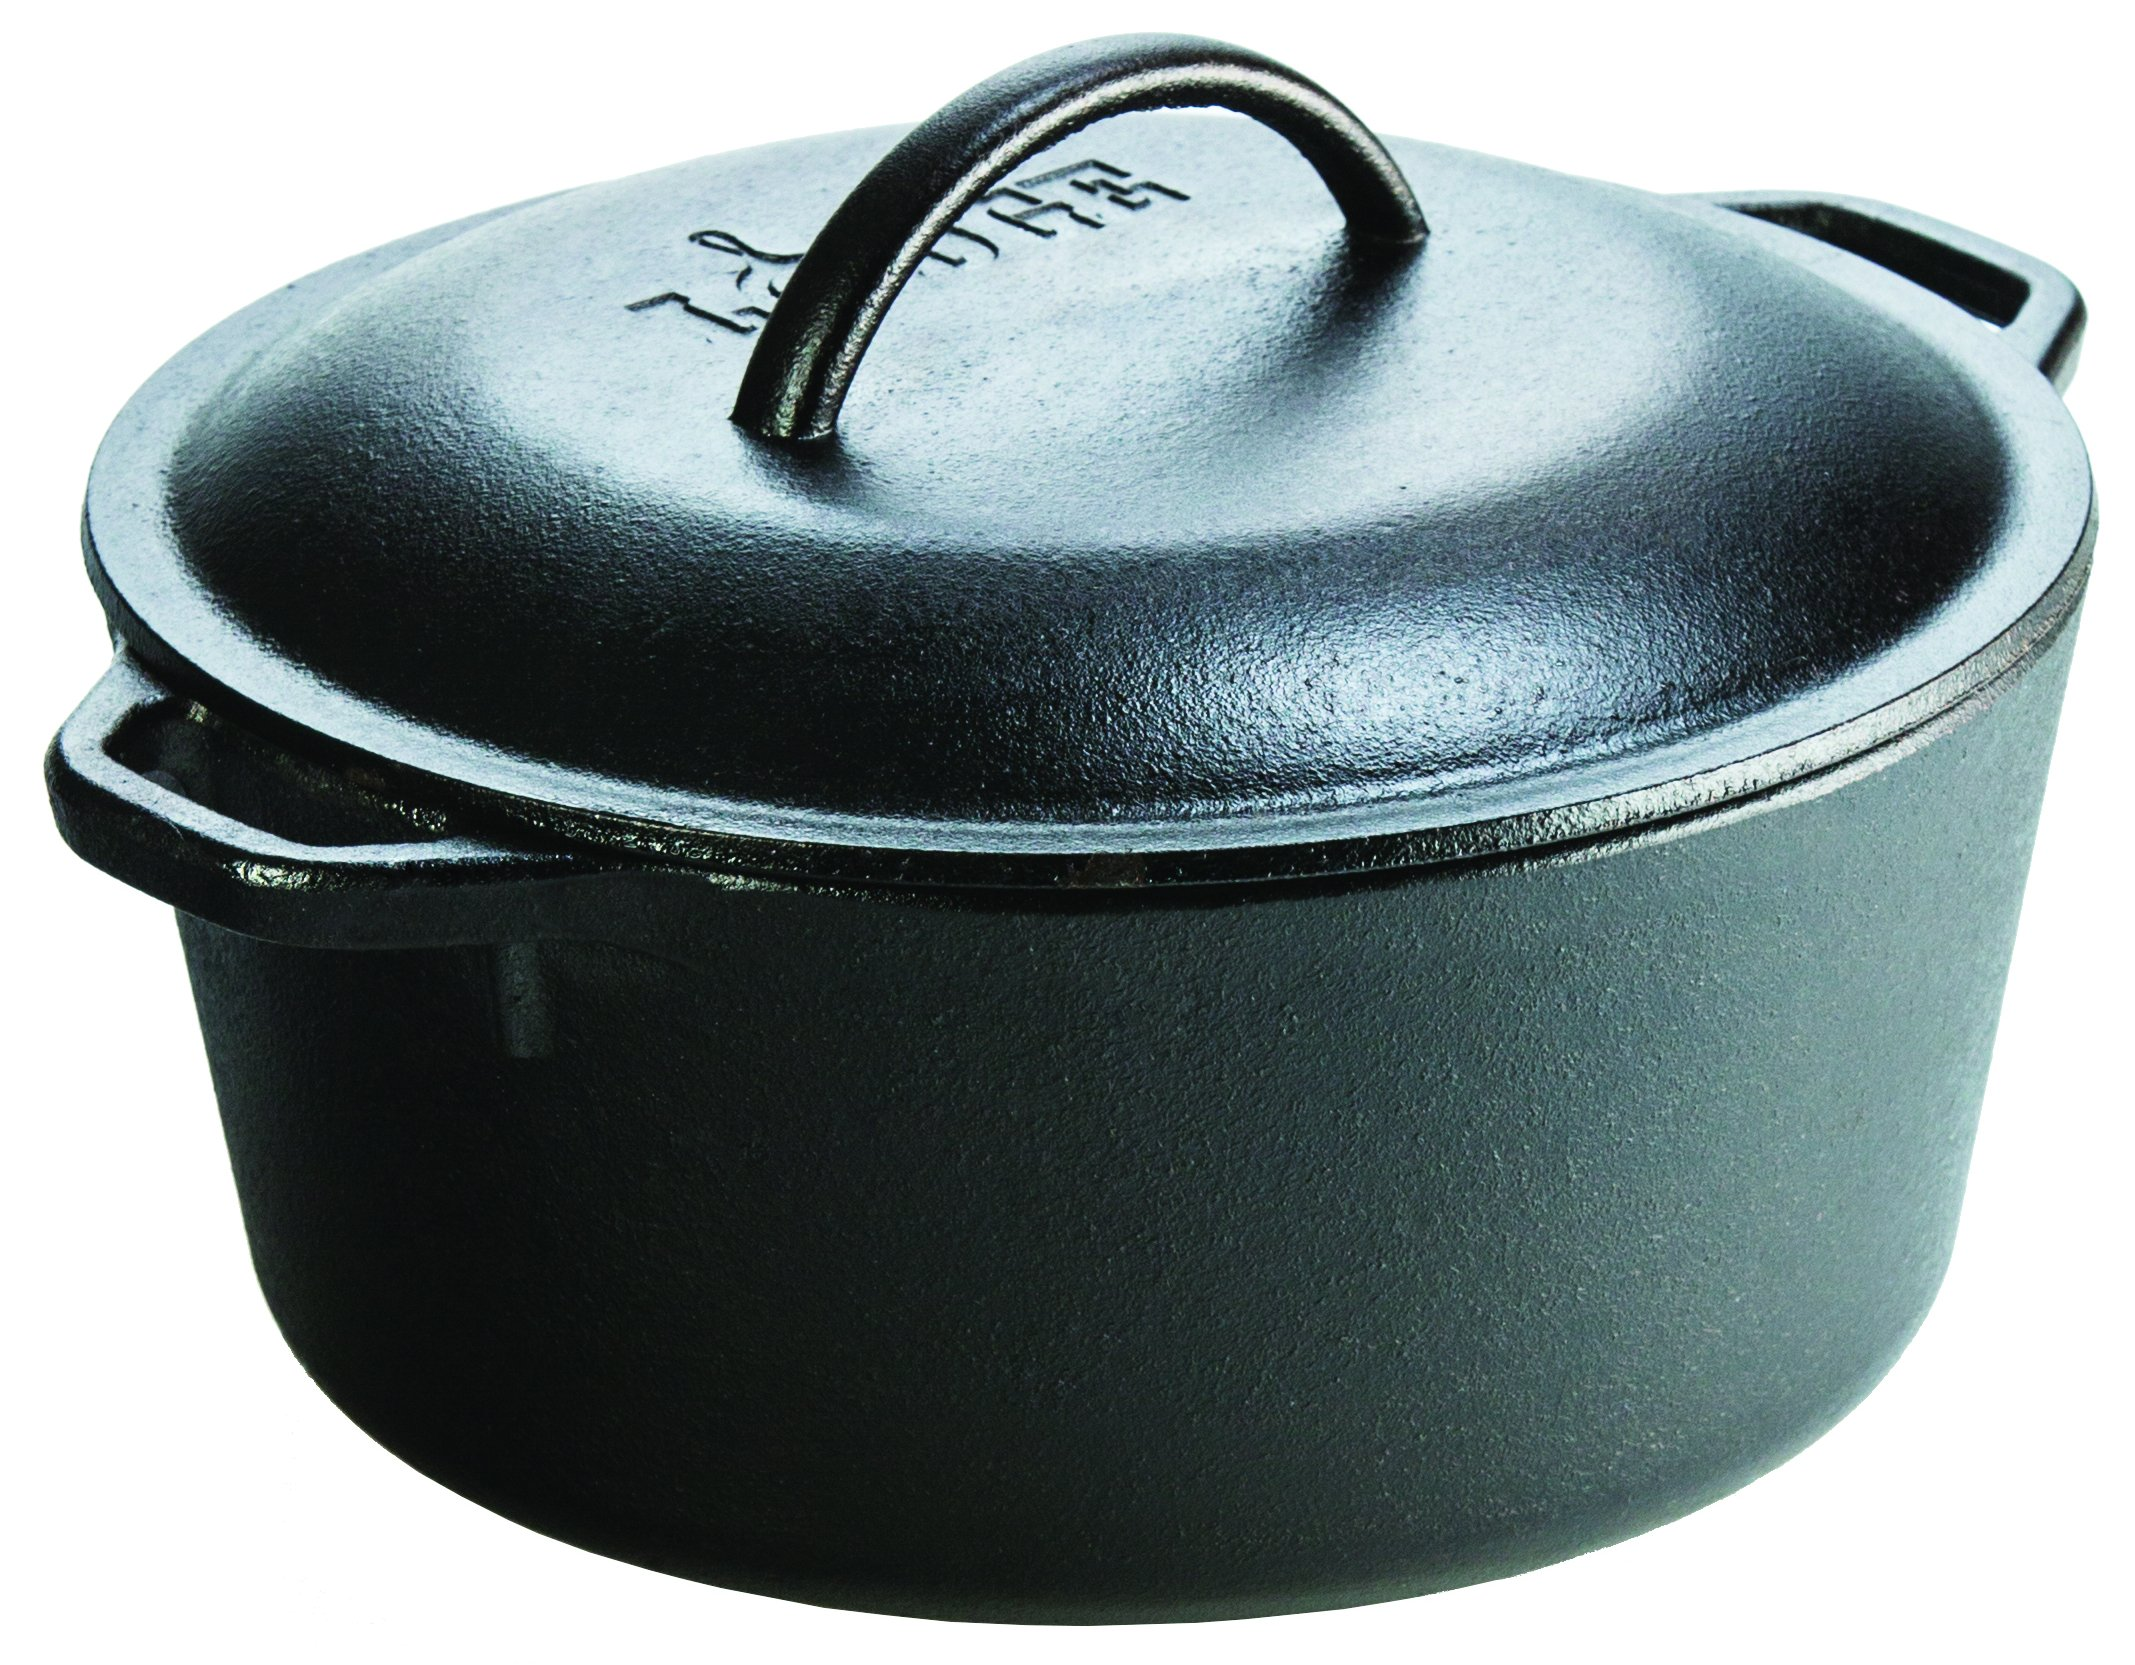 "Lodge Seasoned Cast Iron 5 Piece Bundle. 10.5"" Griddle, 8"" Skillet, 10.25"" Skillet, 10.25"" Dutch Oven, and 10.25"" Lid by Lodge (Image #7)"